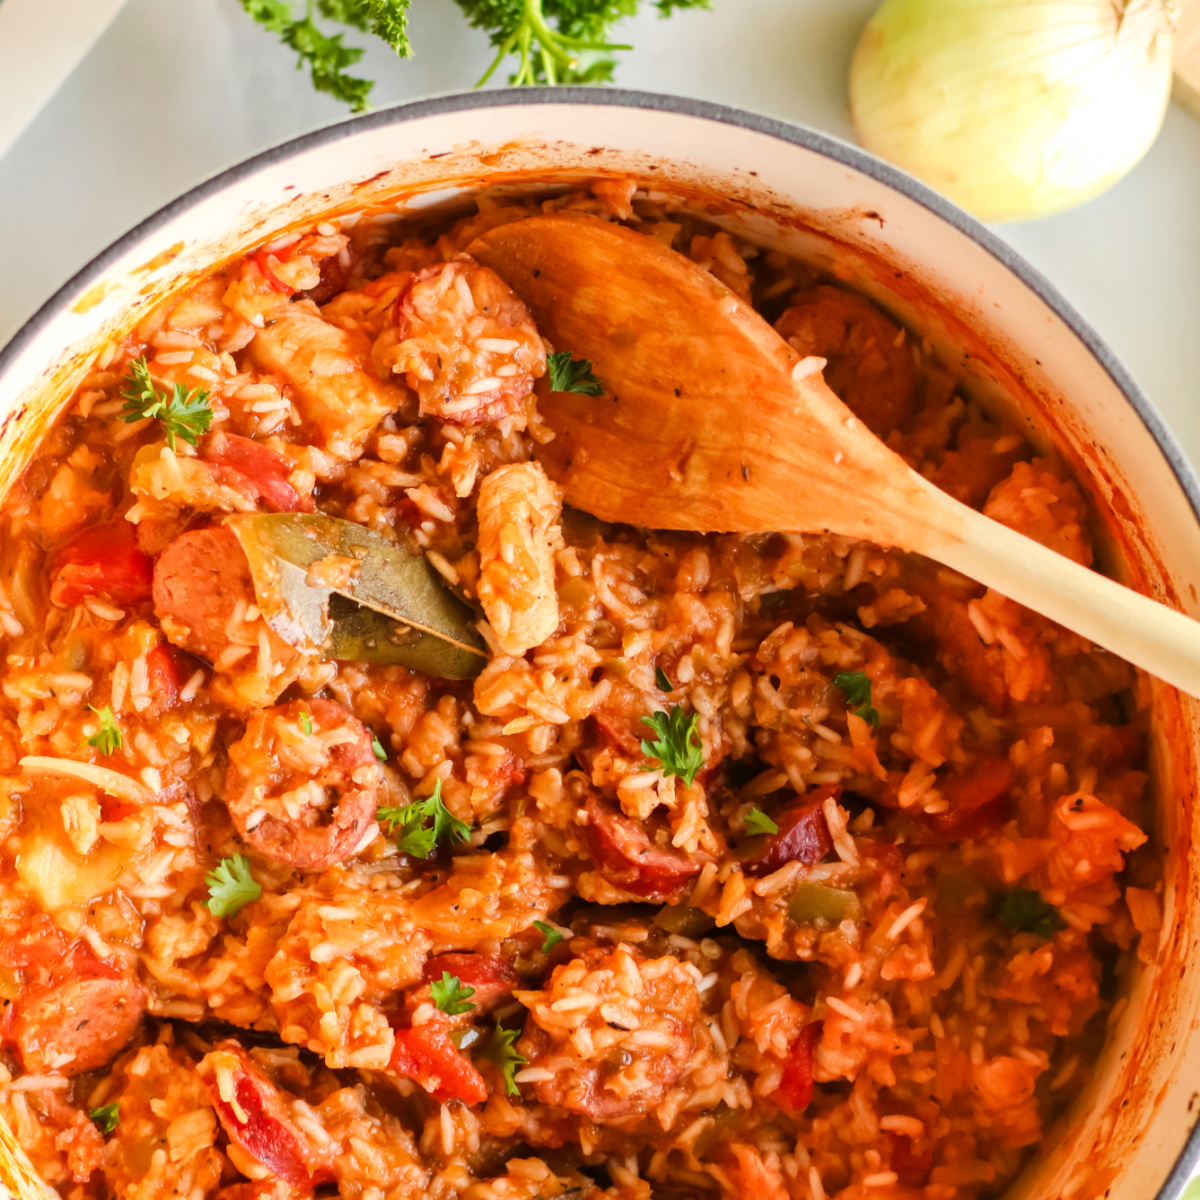 Chicken Jambalaya with sausage cooked and ready to serve